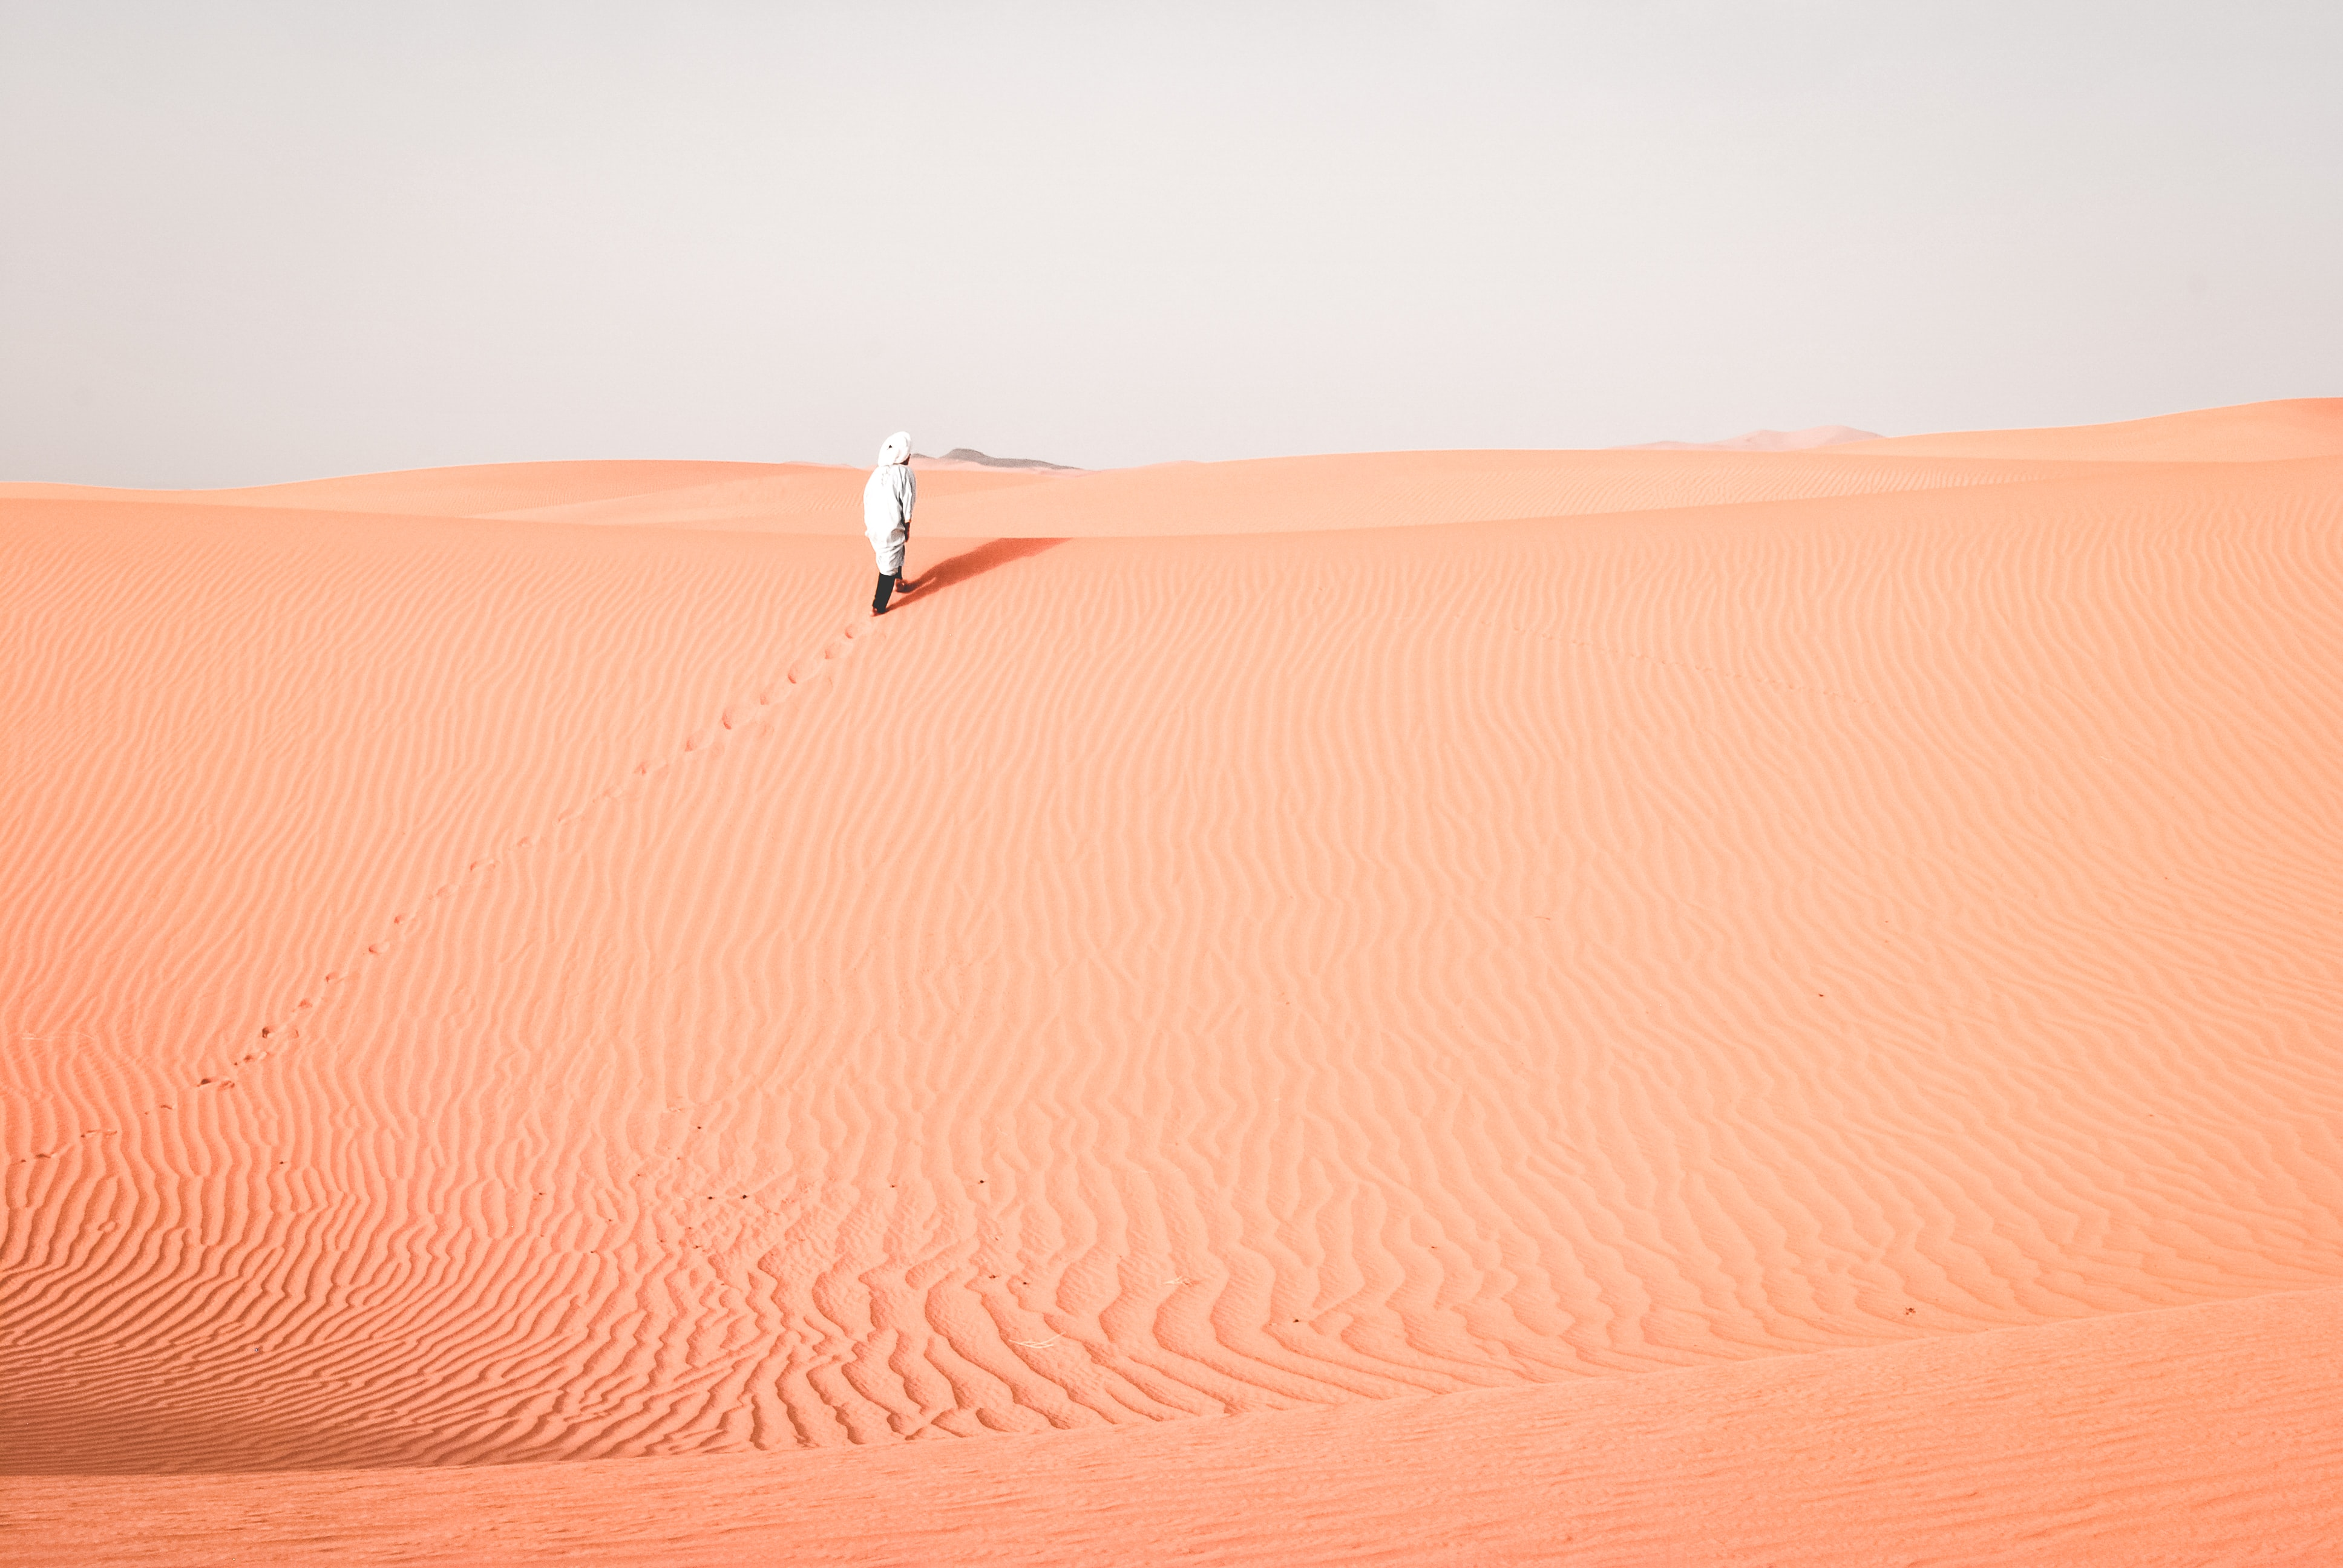 Hiking through rippled sand dunes of Erg Chebbi